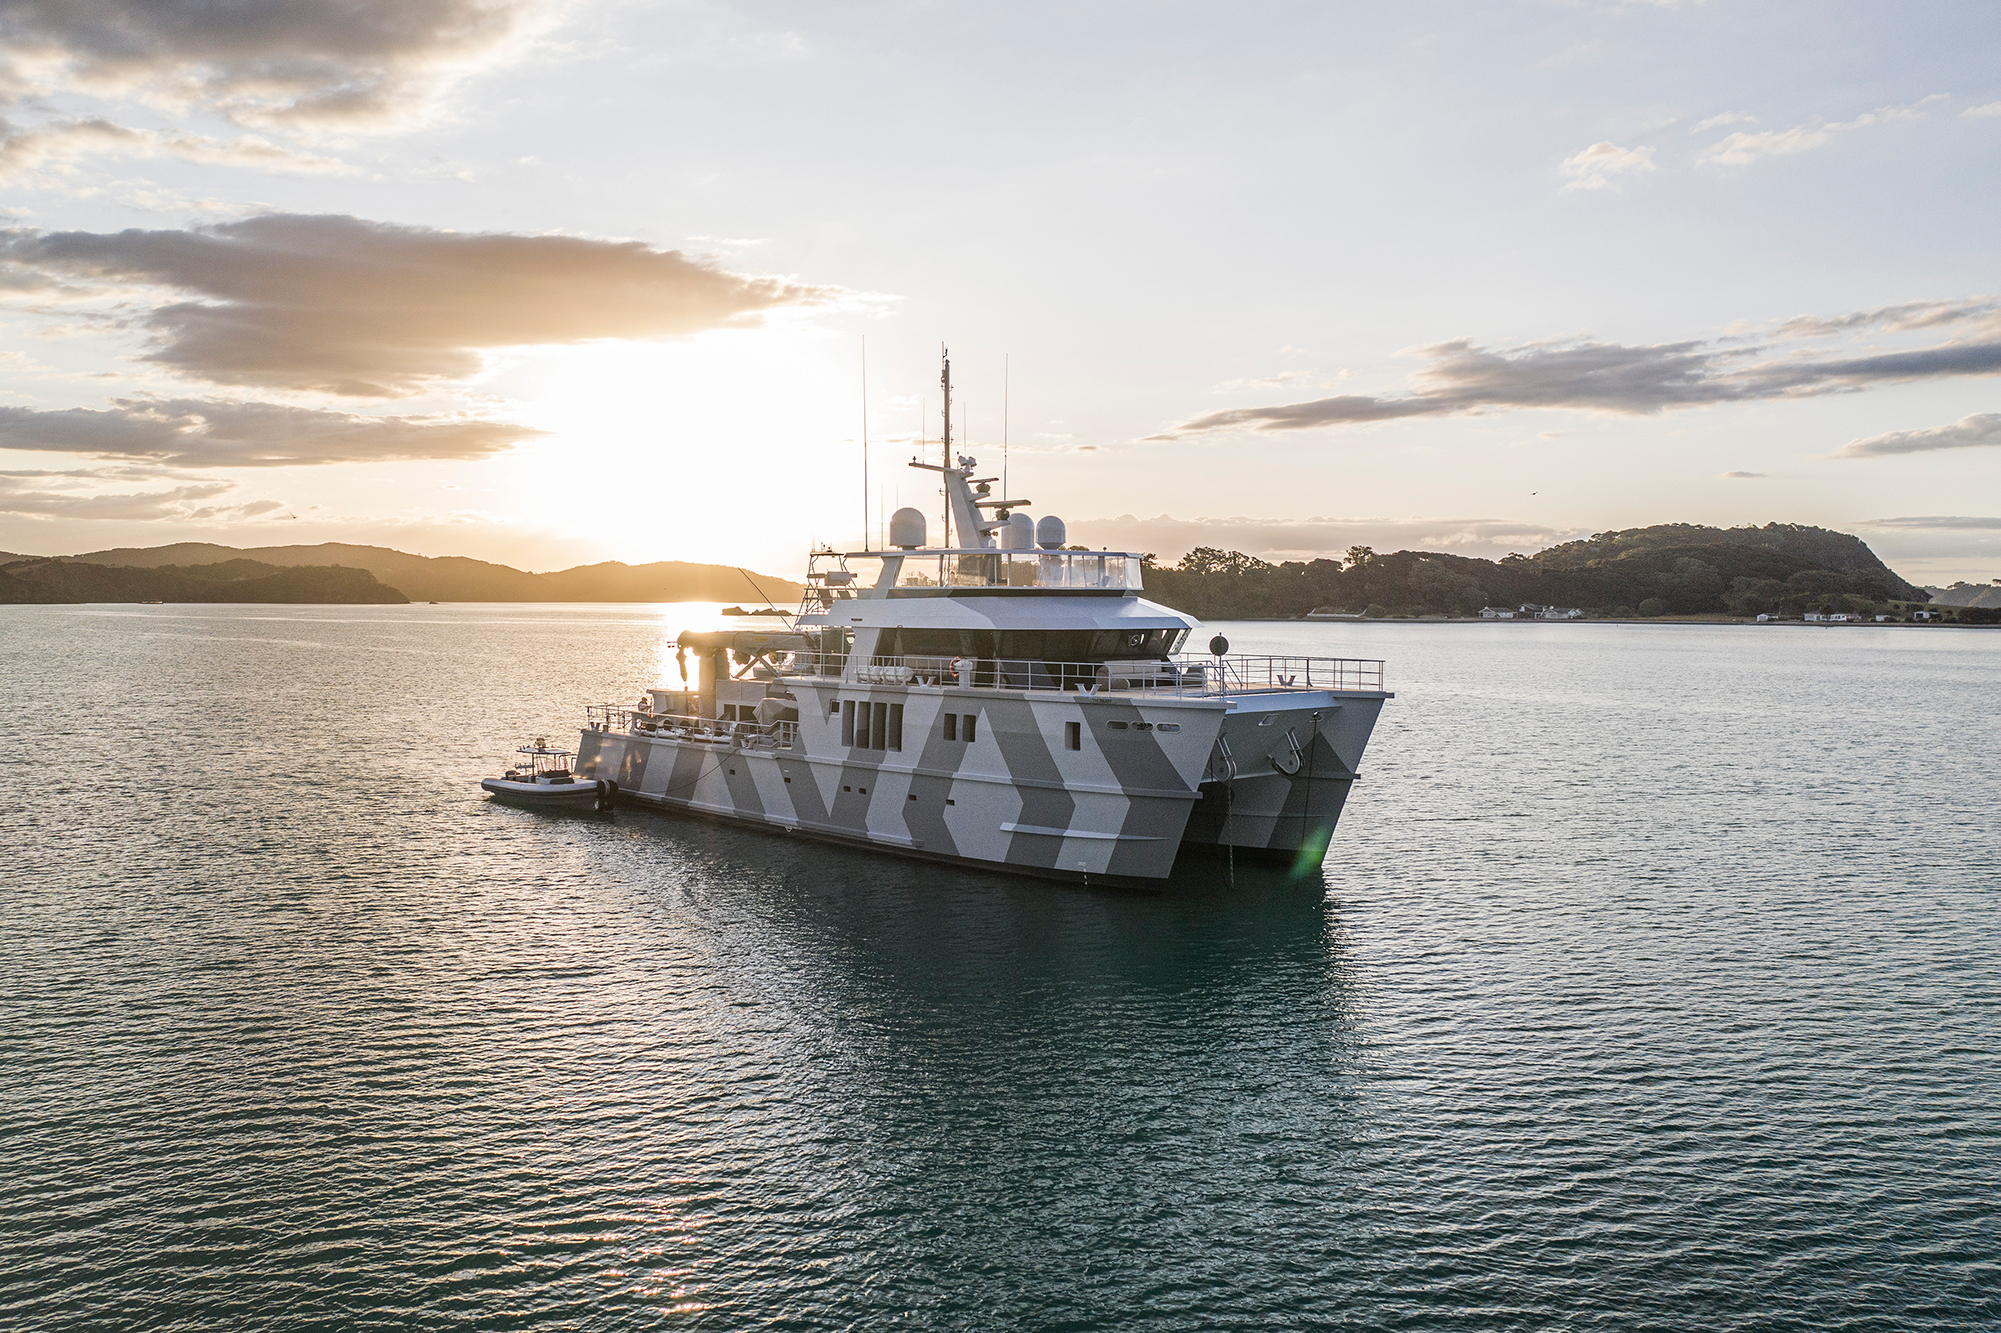 NZ NEW BUILD 'THE BEAST' RENDERS UNVEILED